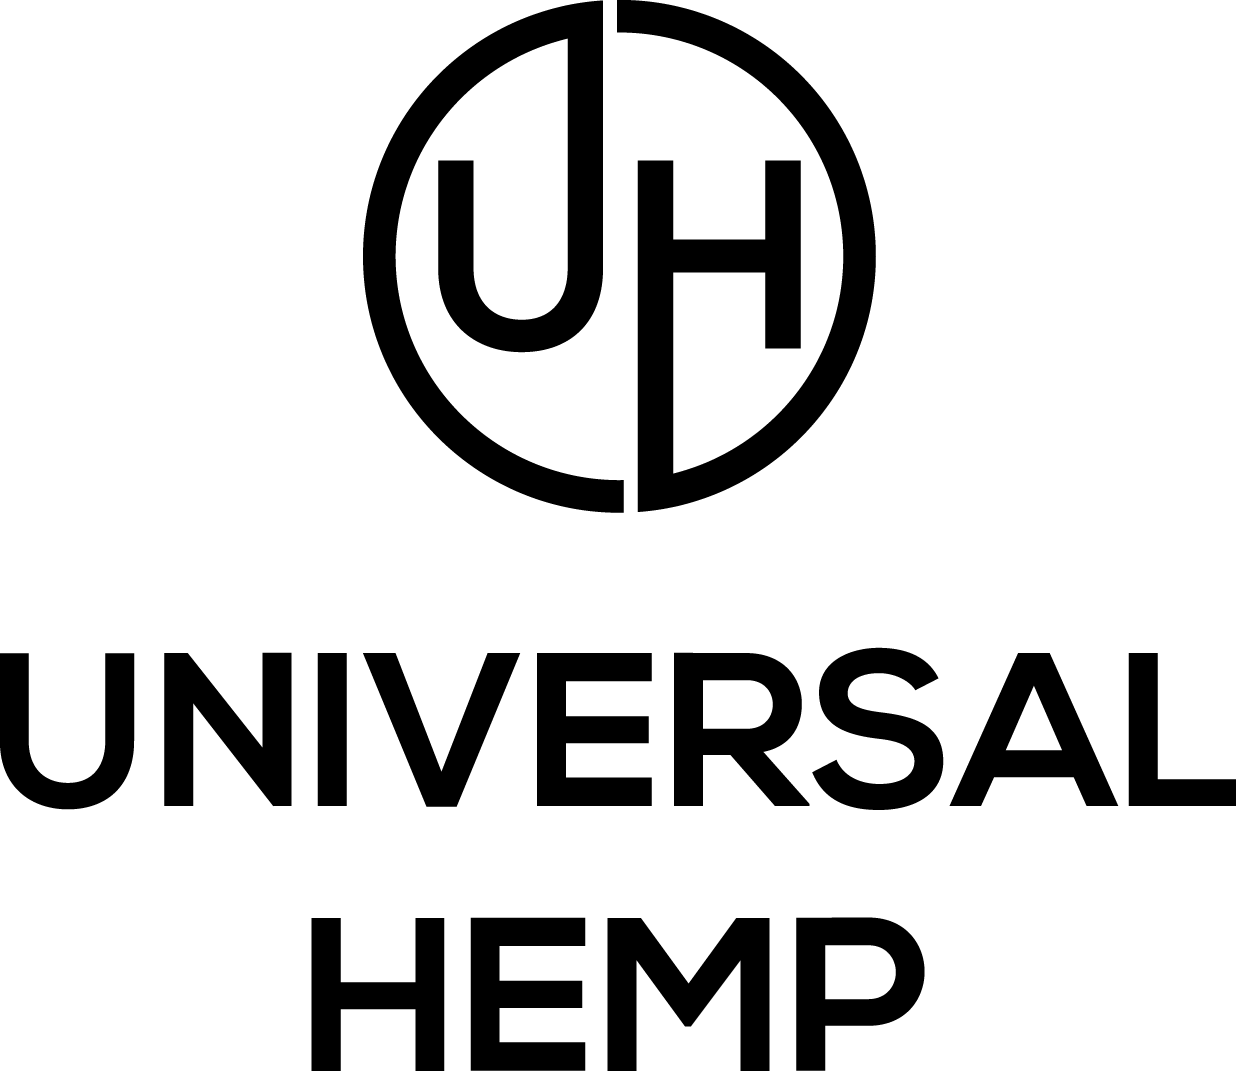 6x6 Universal Hemp - Black -Transparent BG logo.png